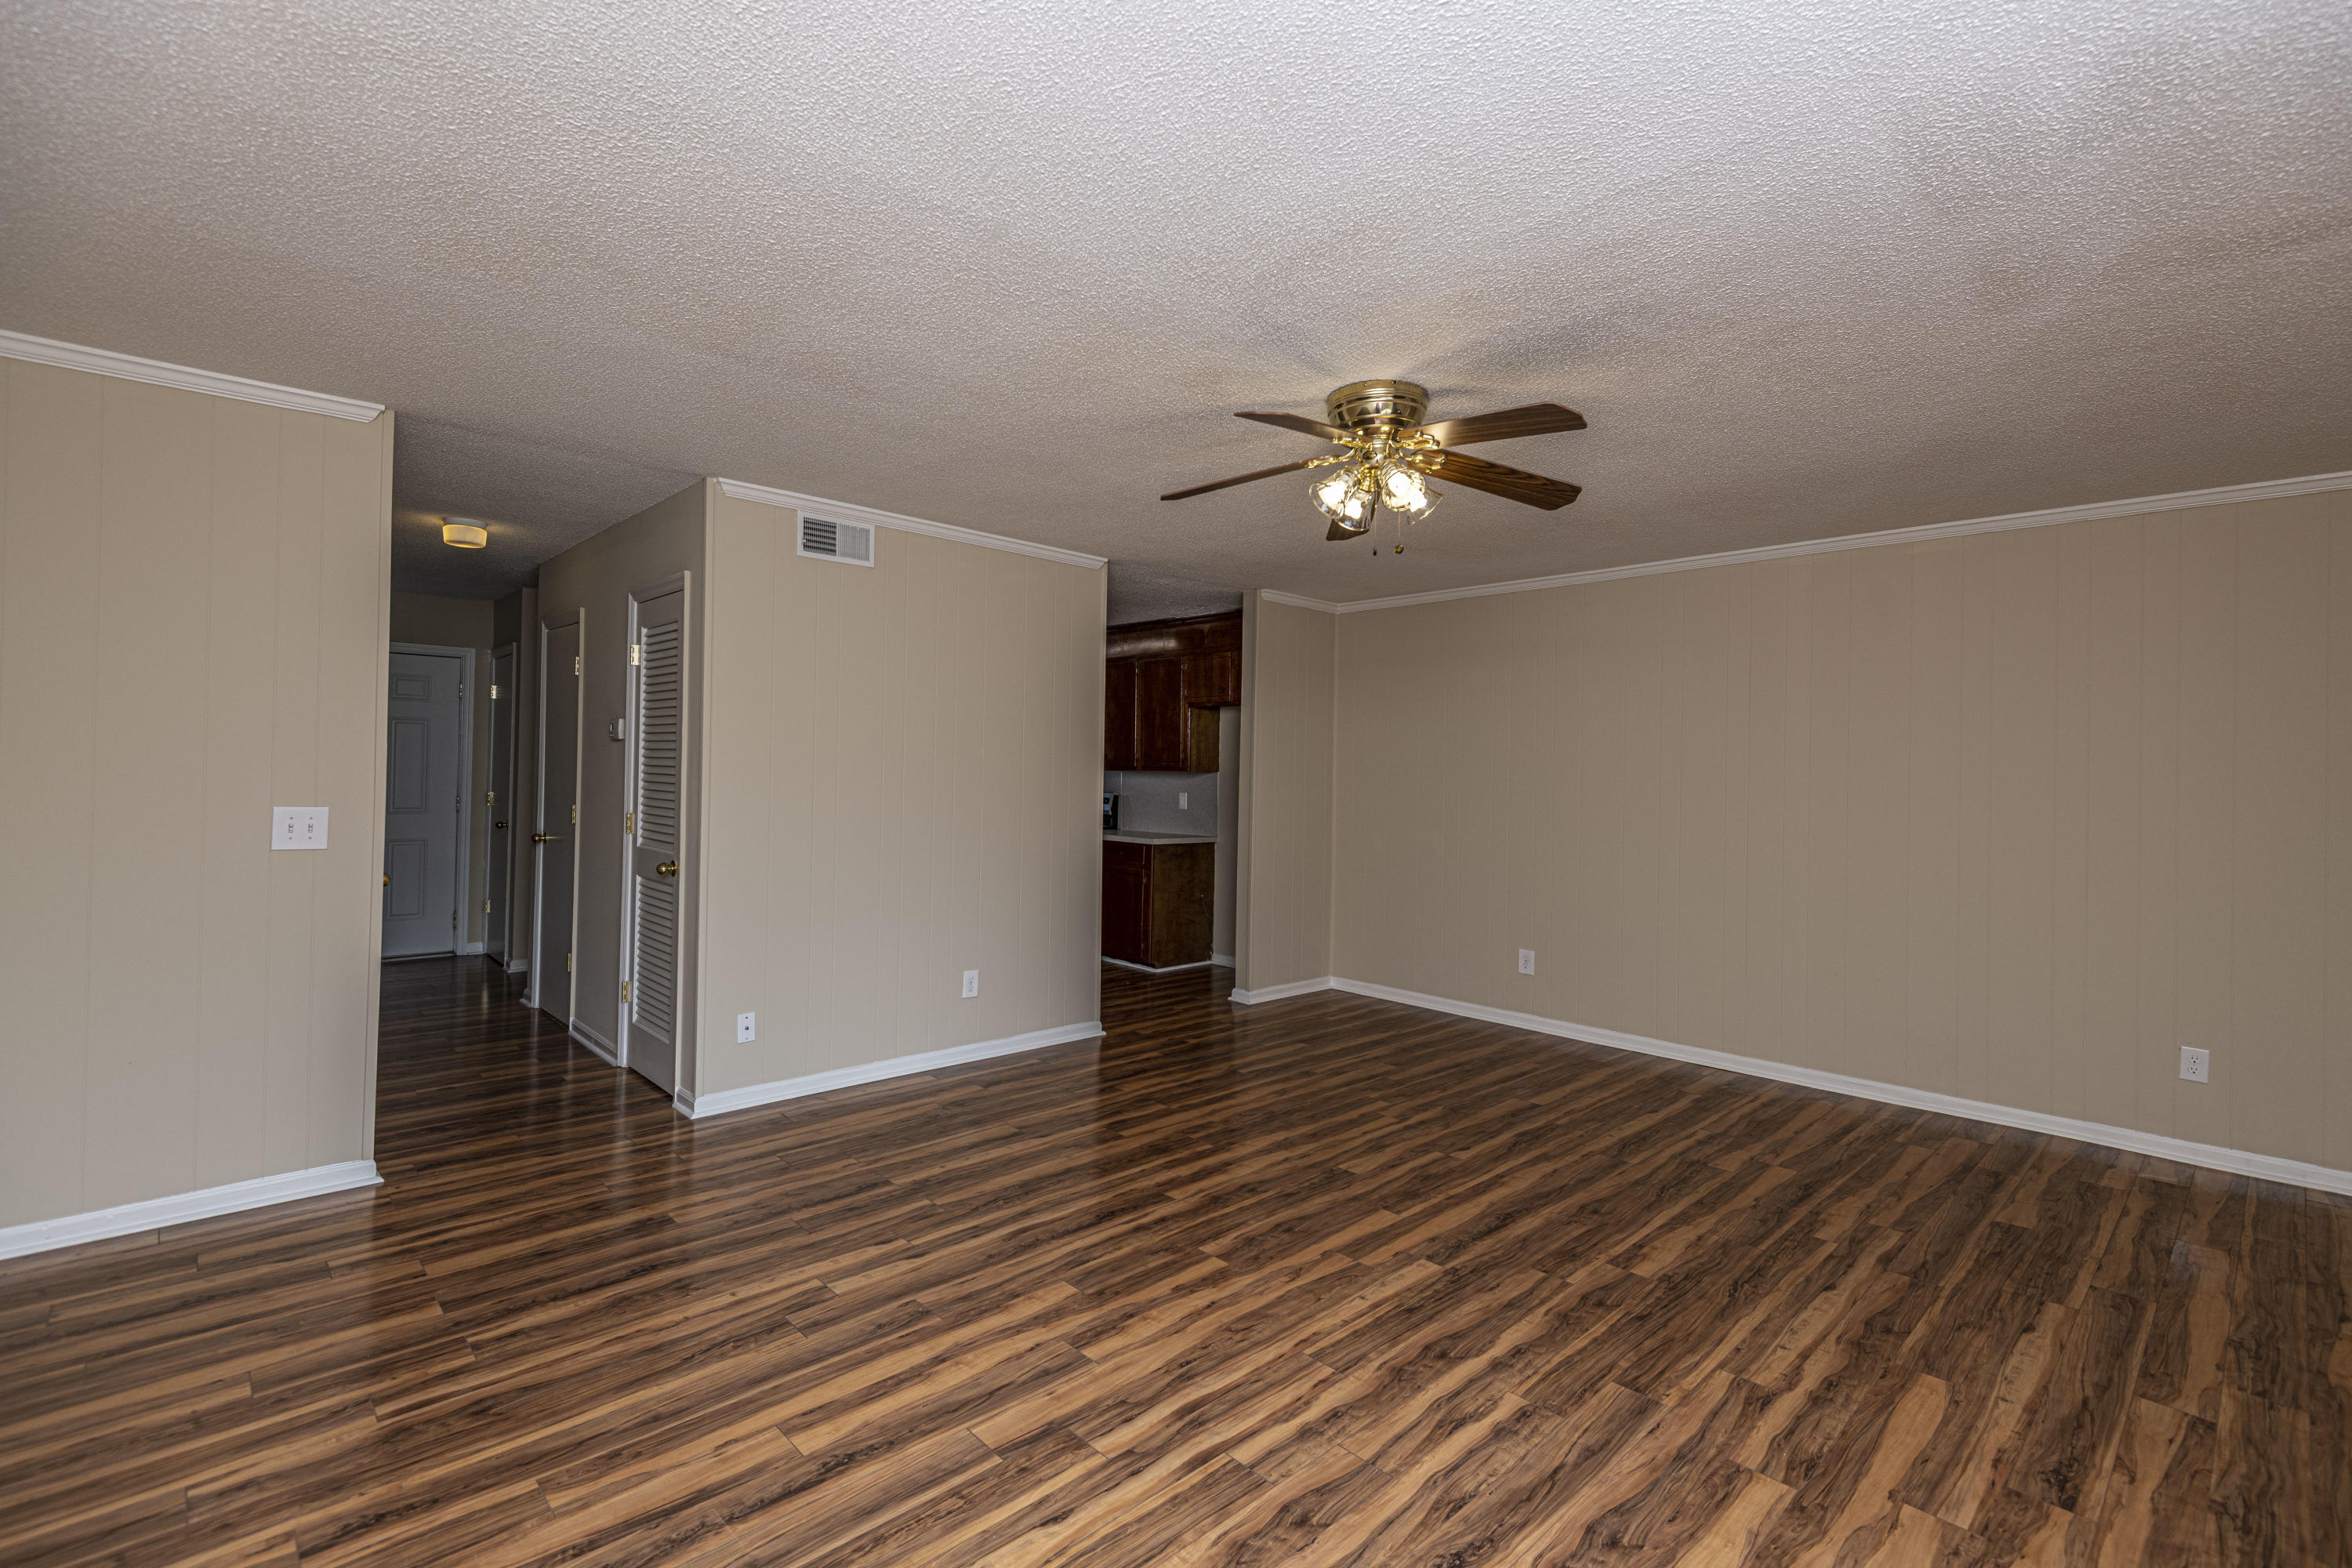 Foxborough Town Houses Homes For Sale - 120 Brush, Goose Creek, SC - 21